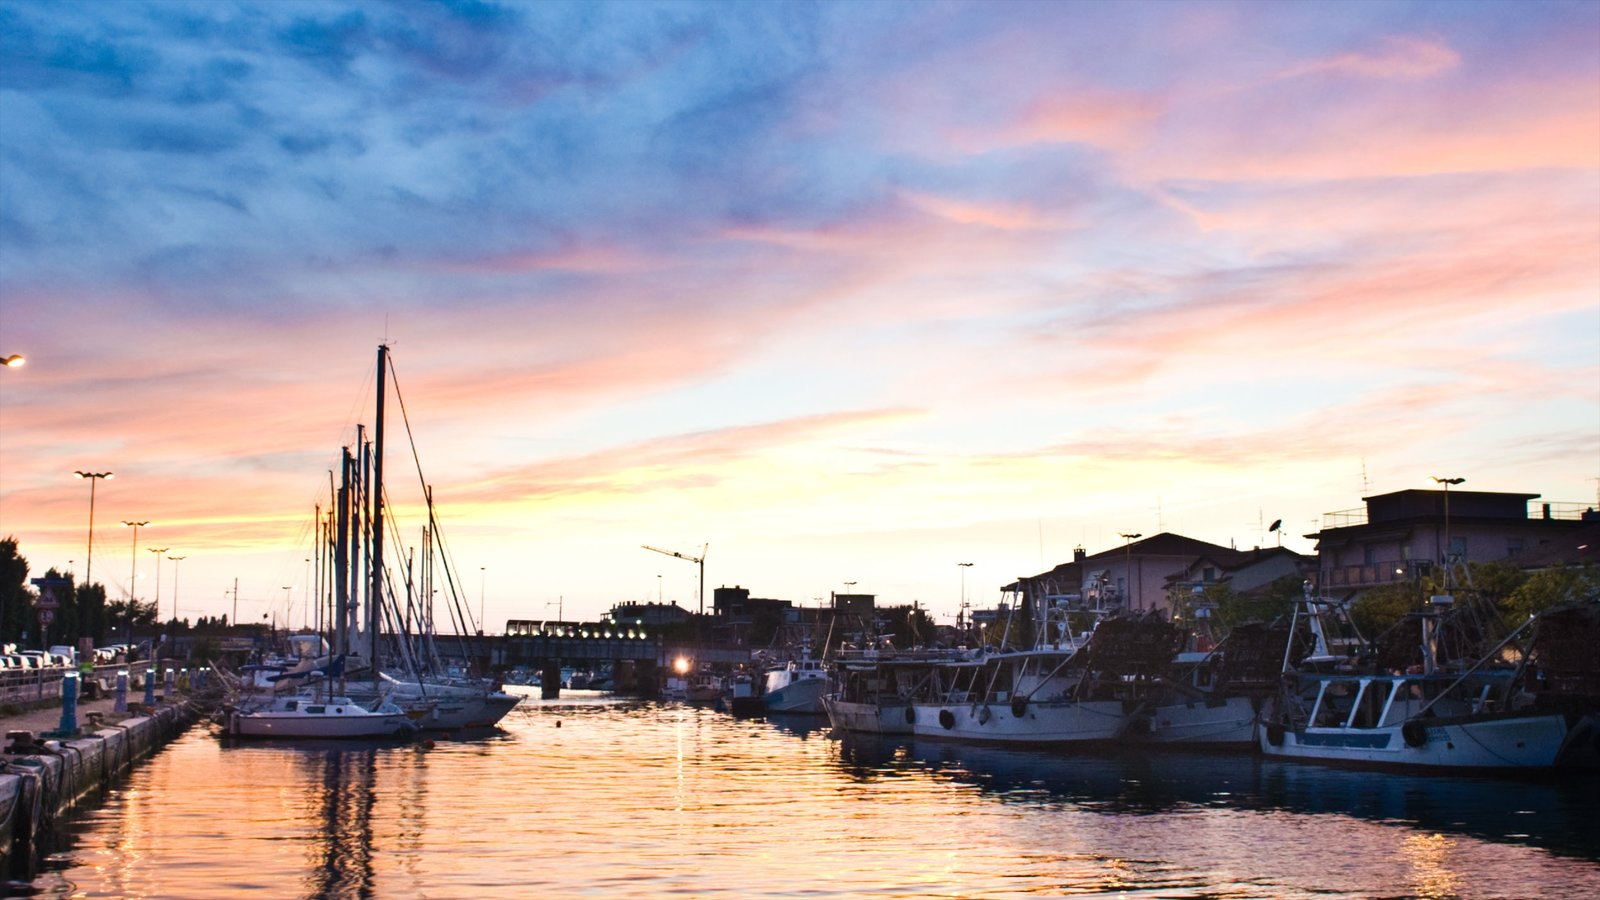 Bellaria-Igea Marina which includes a sunset, a bay or harbor and a city